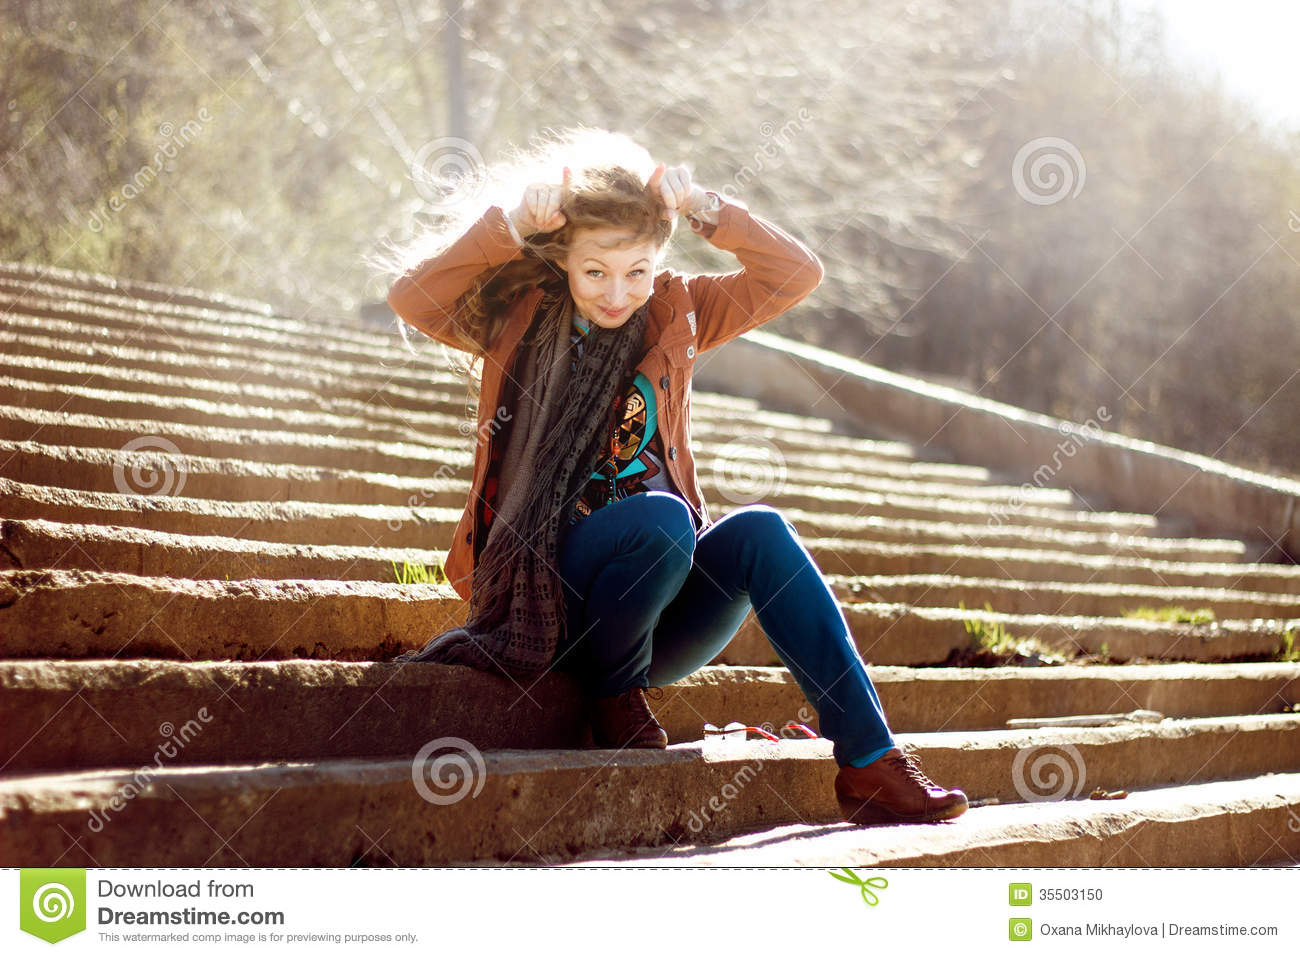 funny woman with blonde curly hair on stairs background